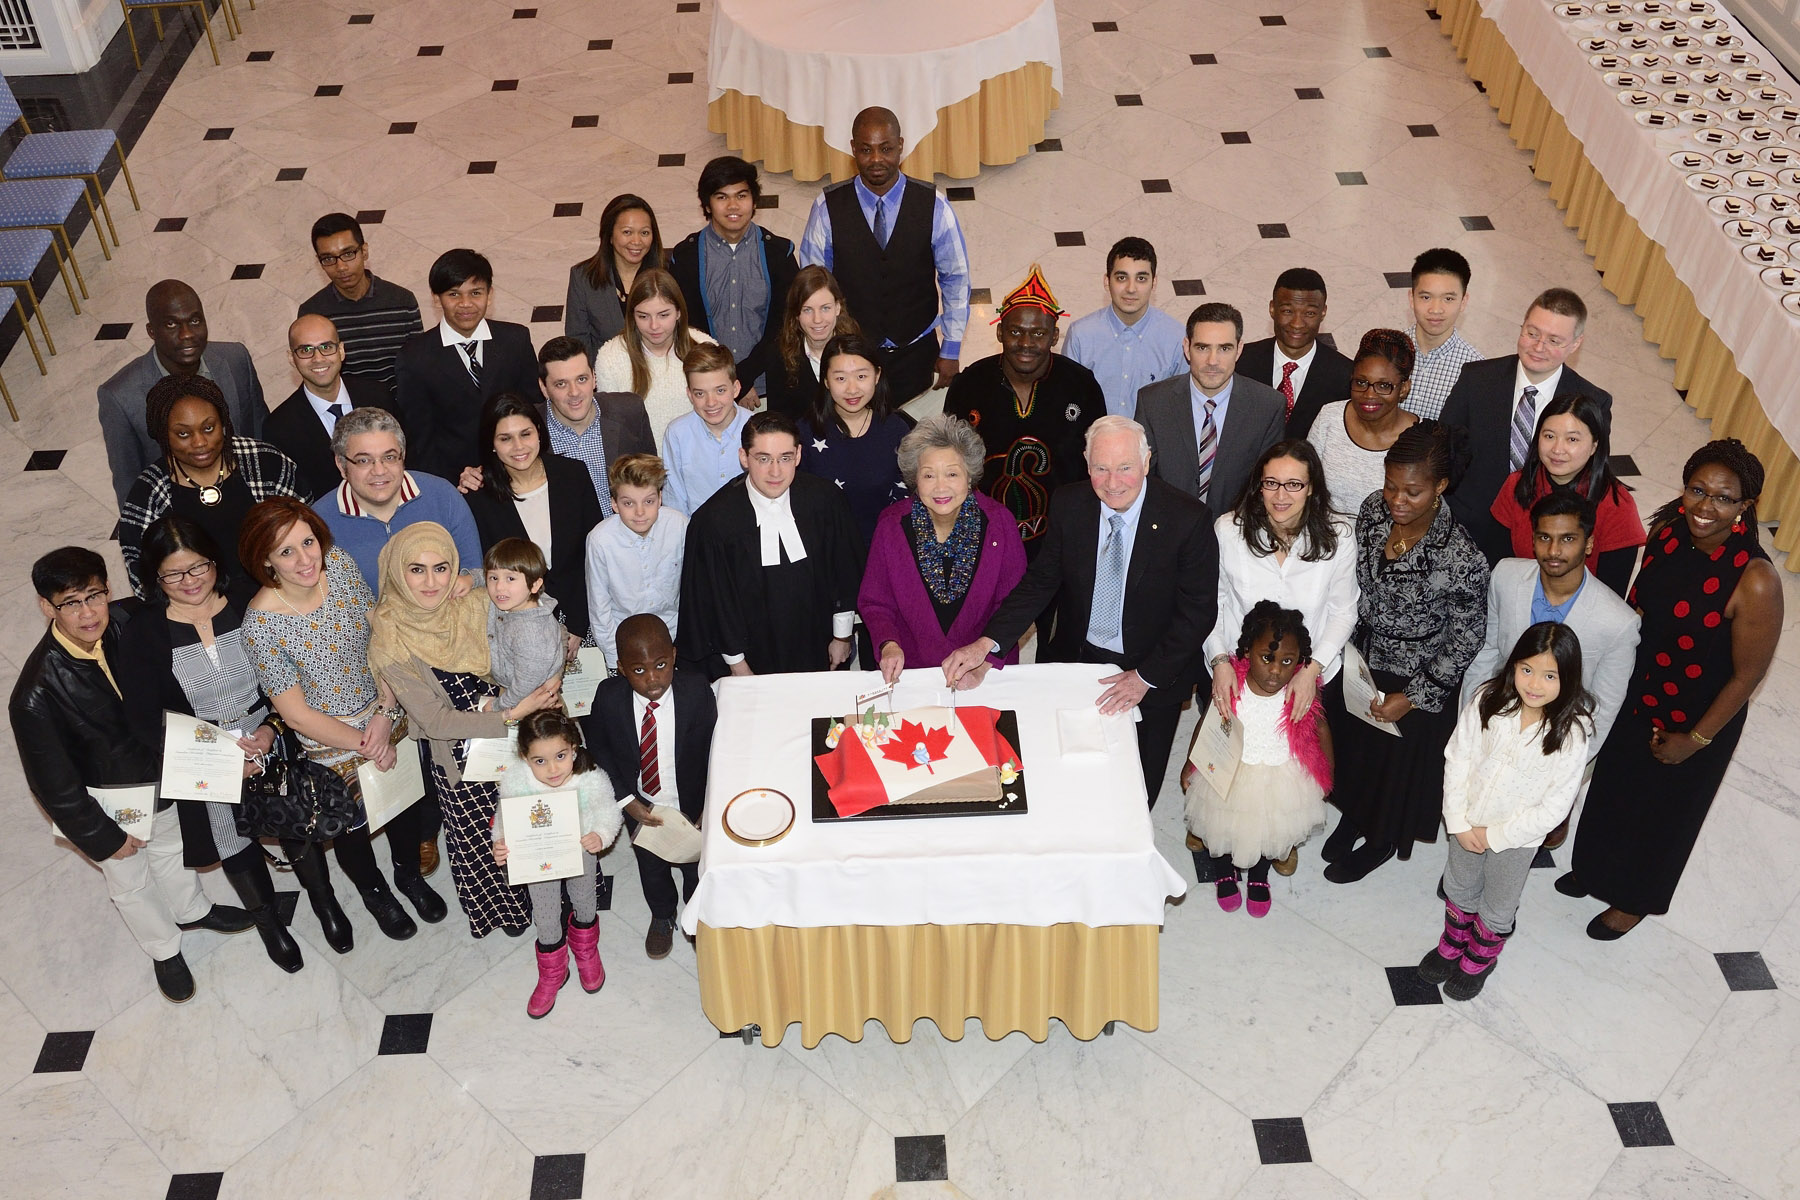 At the end of the ceremony the new Canadians were invited to celebrate this special occasion.